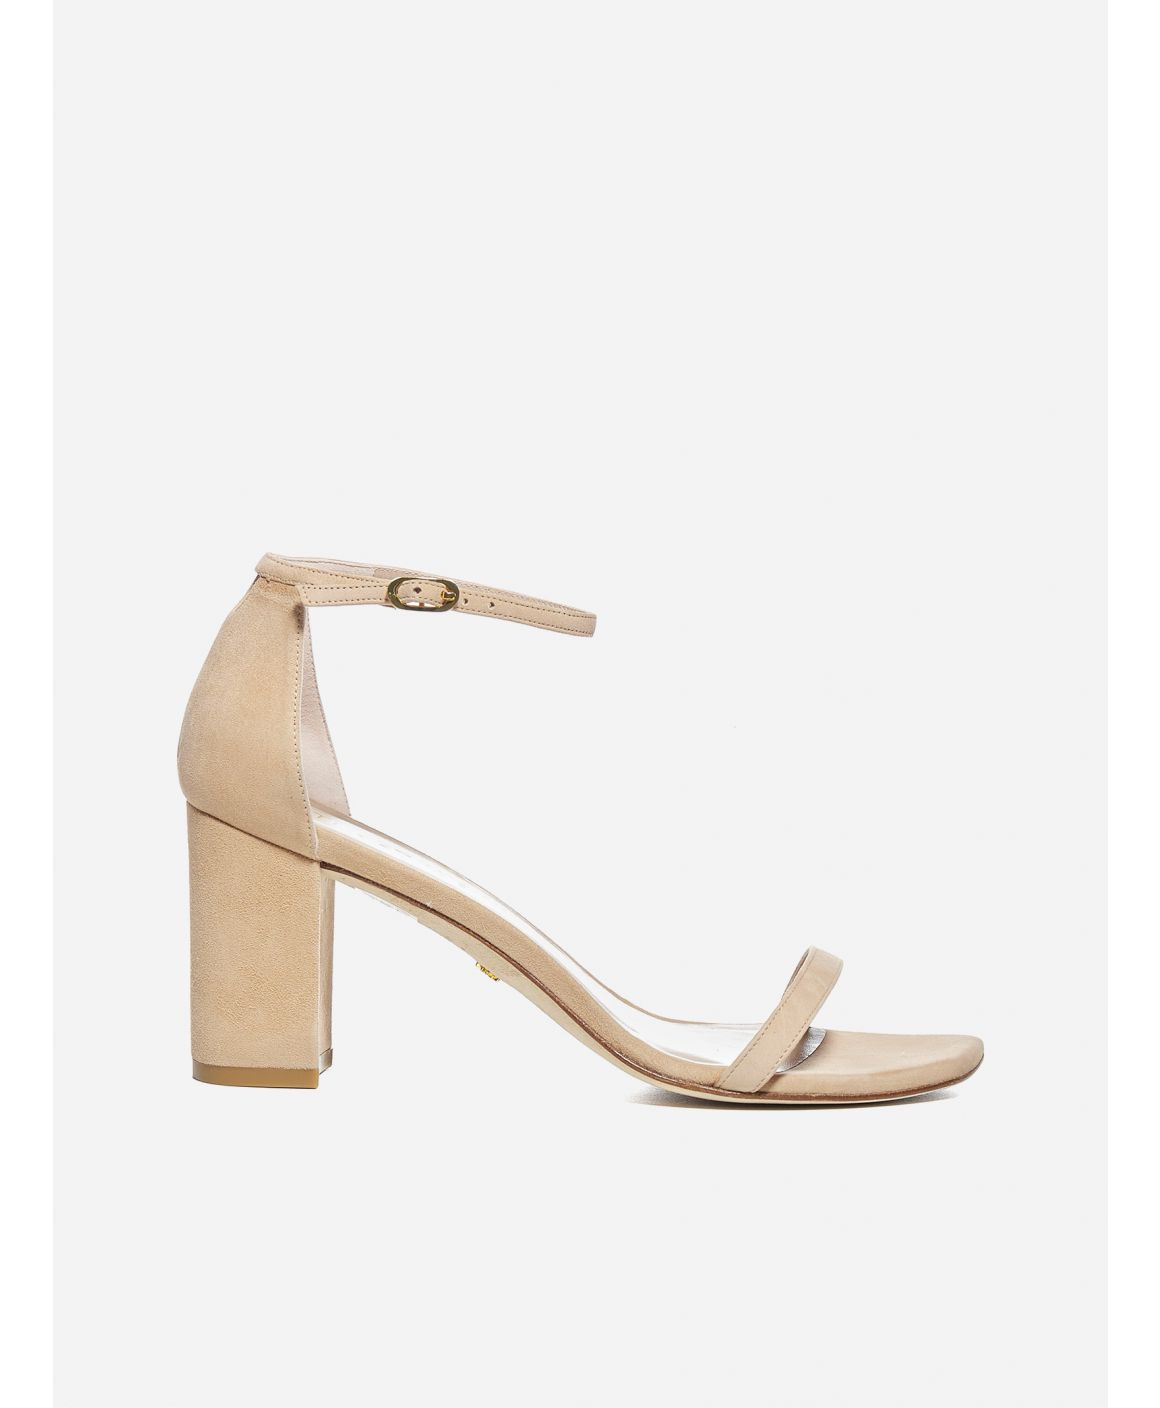 Amelina suede sandals